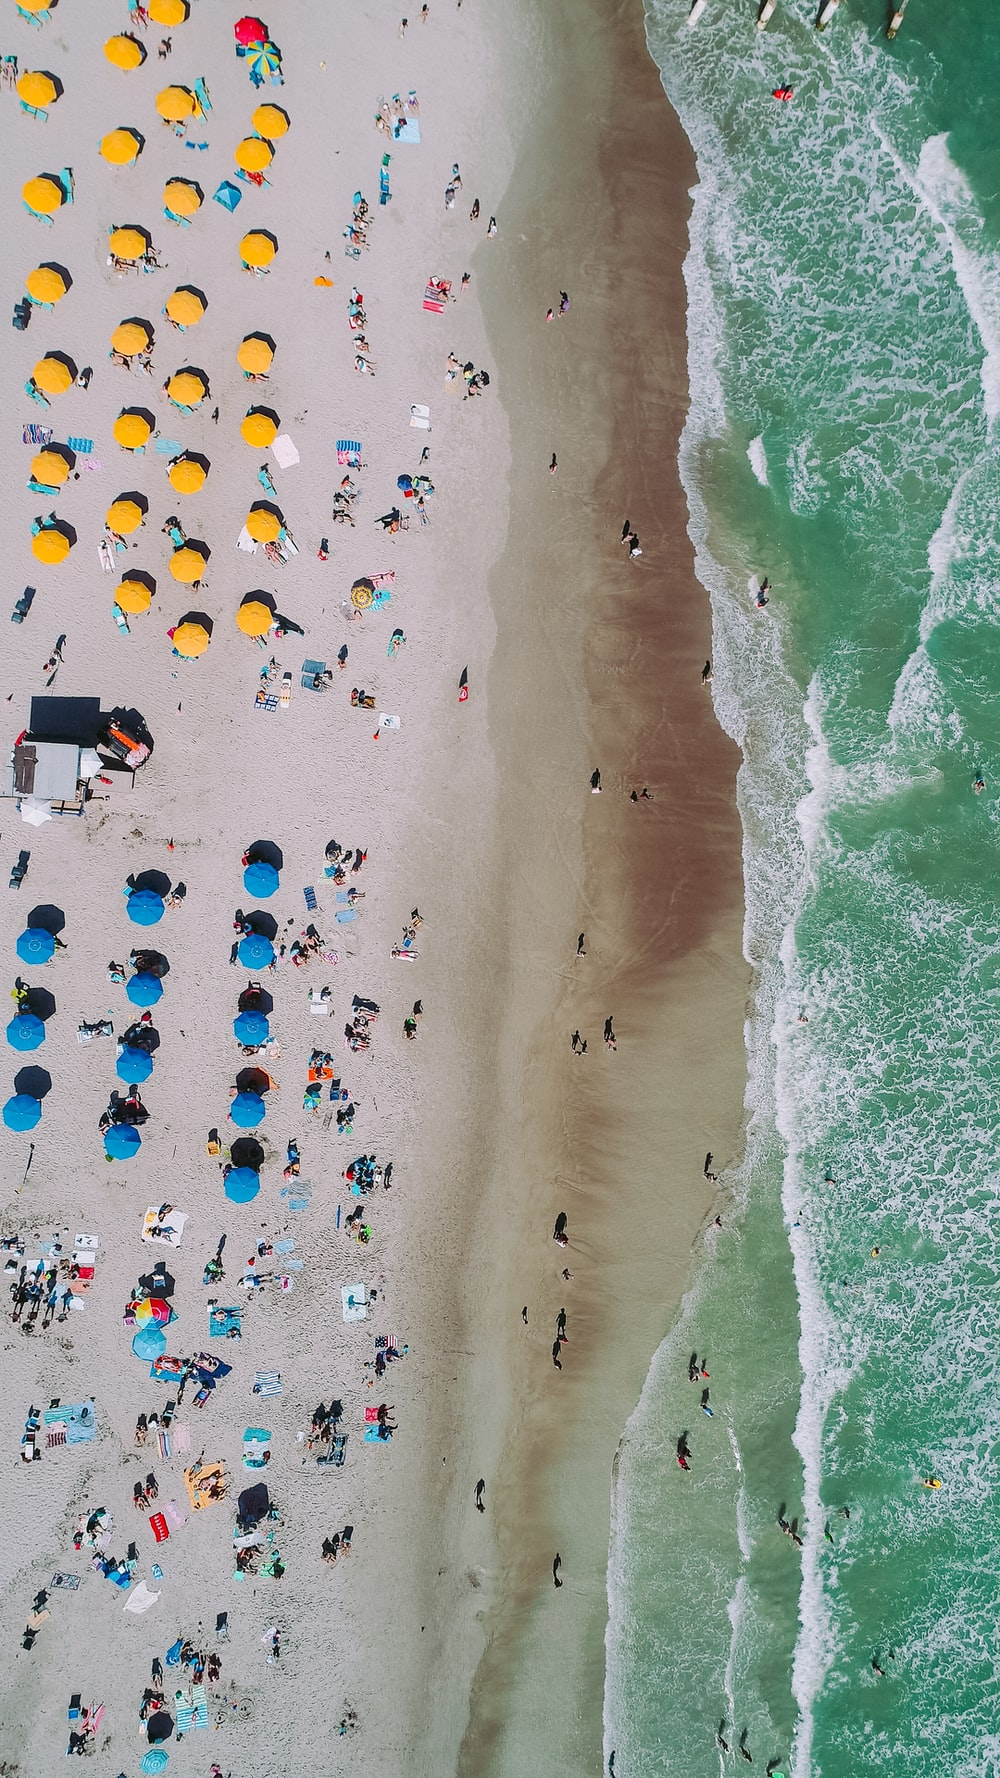 aerial photo of seashore with people